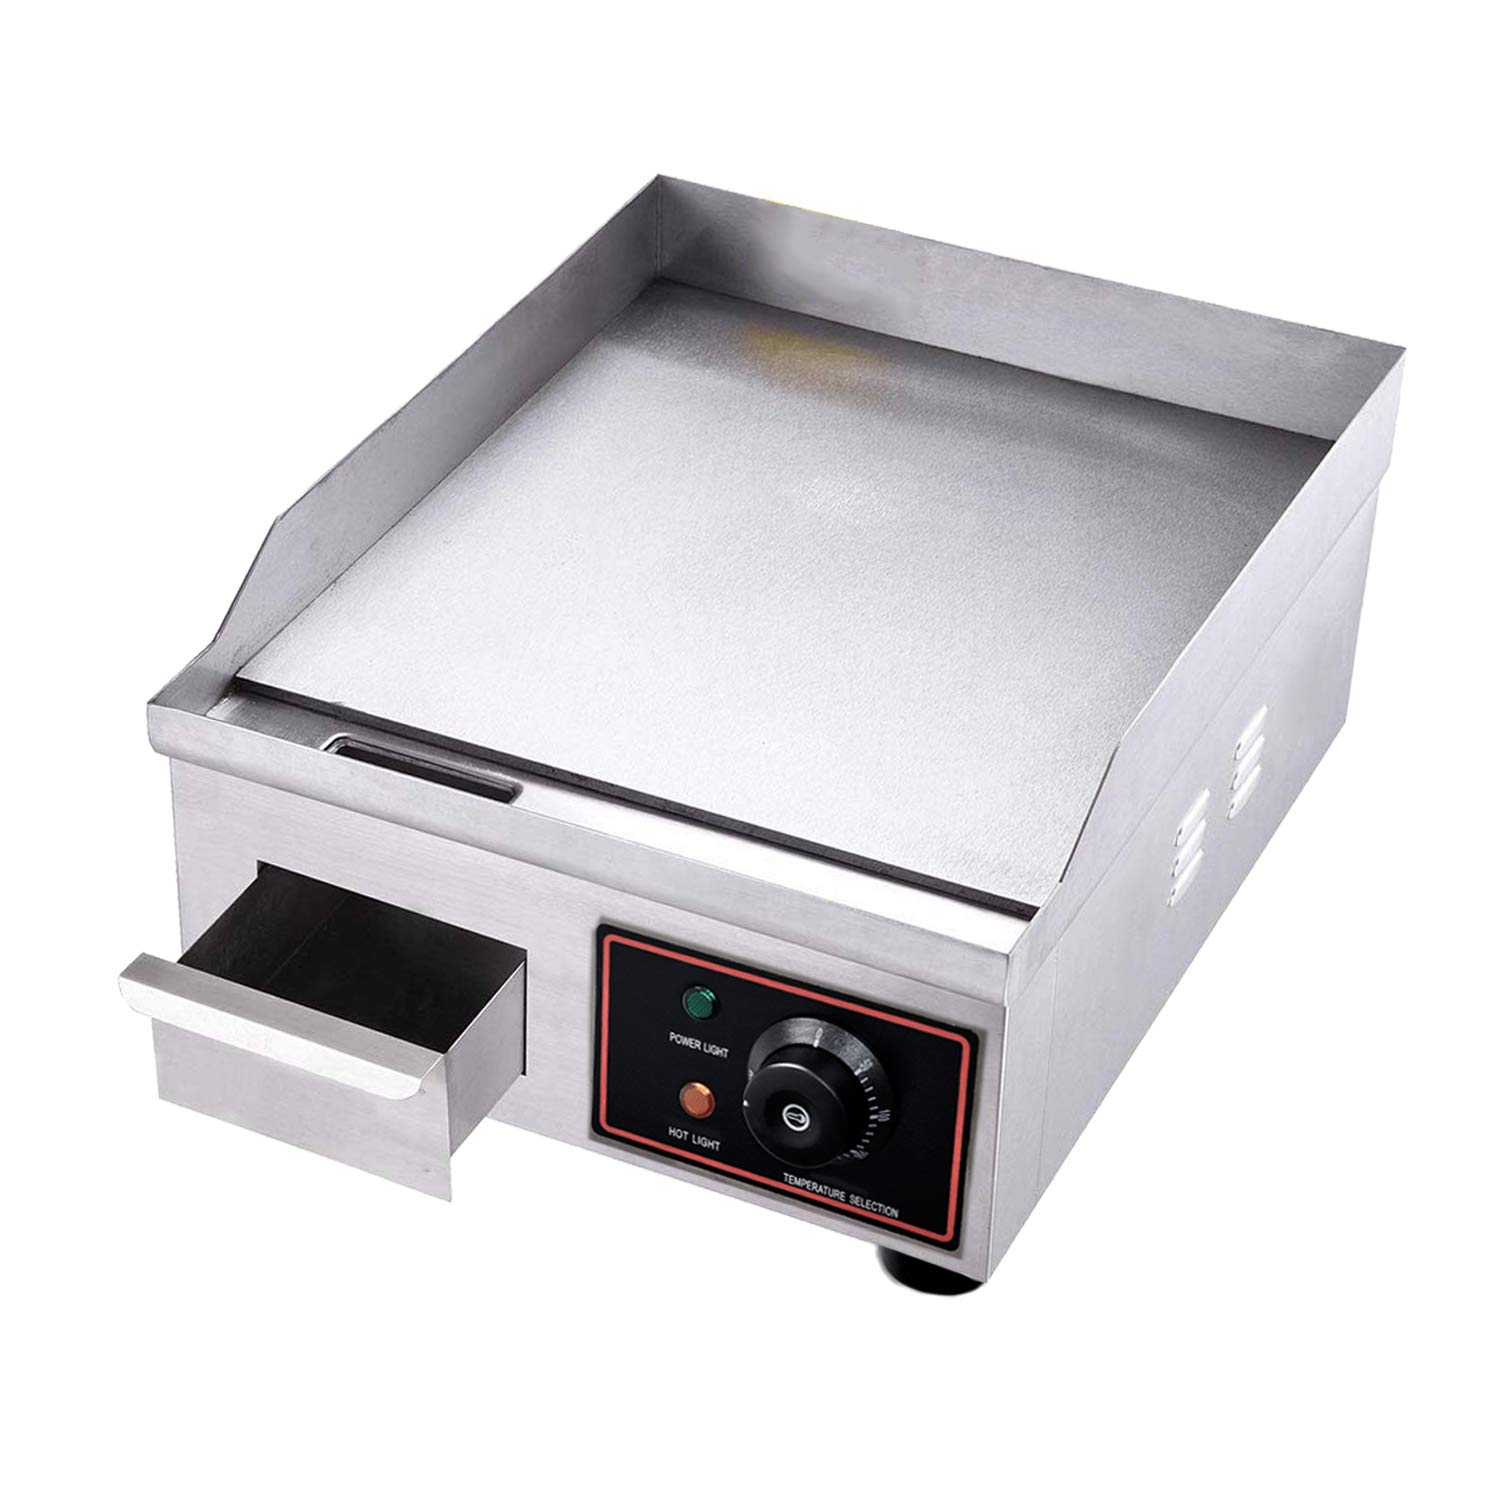 Stainless Steel Restaurant Grill Proshopping 1500W 14 Commercial Electric Countertop Griddle Grill with Adjustable Temperture Control Tabletop Flat Grill 110V